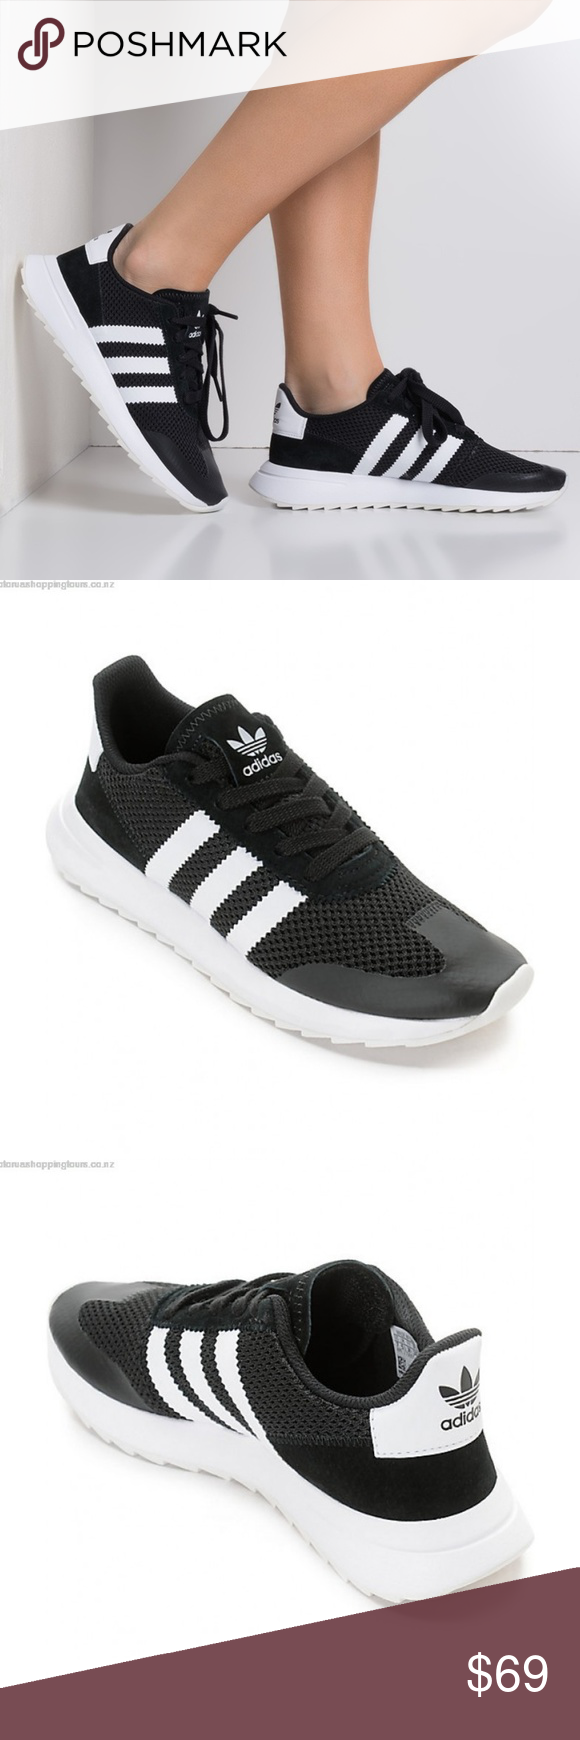 NEW adidas Flashback Black & White Athletic Shoes Brand New With Tags & Box !!!  Styled with a classic adidas '70s running heritage look, the Flashback Black and White Shoes offer a modern twist to past designs.The Flashback has a mesh upper with a nubuck toe along with suede heel detailing. For comfort, adidas has given these shoes an EVA midsole and an Ortholite infused cushioned footbed for added support. A blend of retro styling filled with plenty of technology to tackle your fast paced modern lifestyle  Sizes: Multiple Color: Black & White adidas Shoes Athletic Shoes